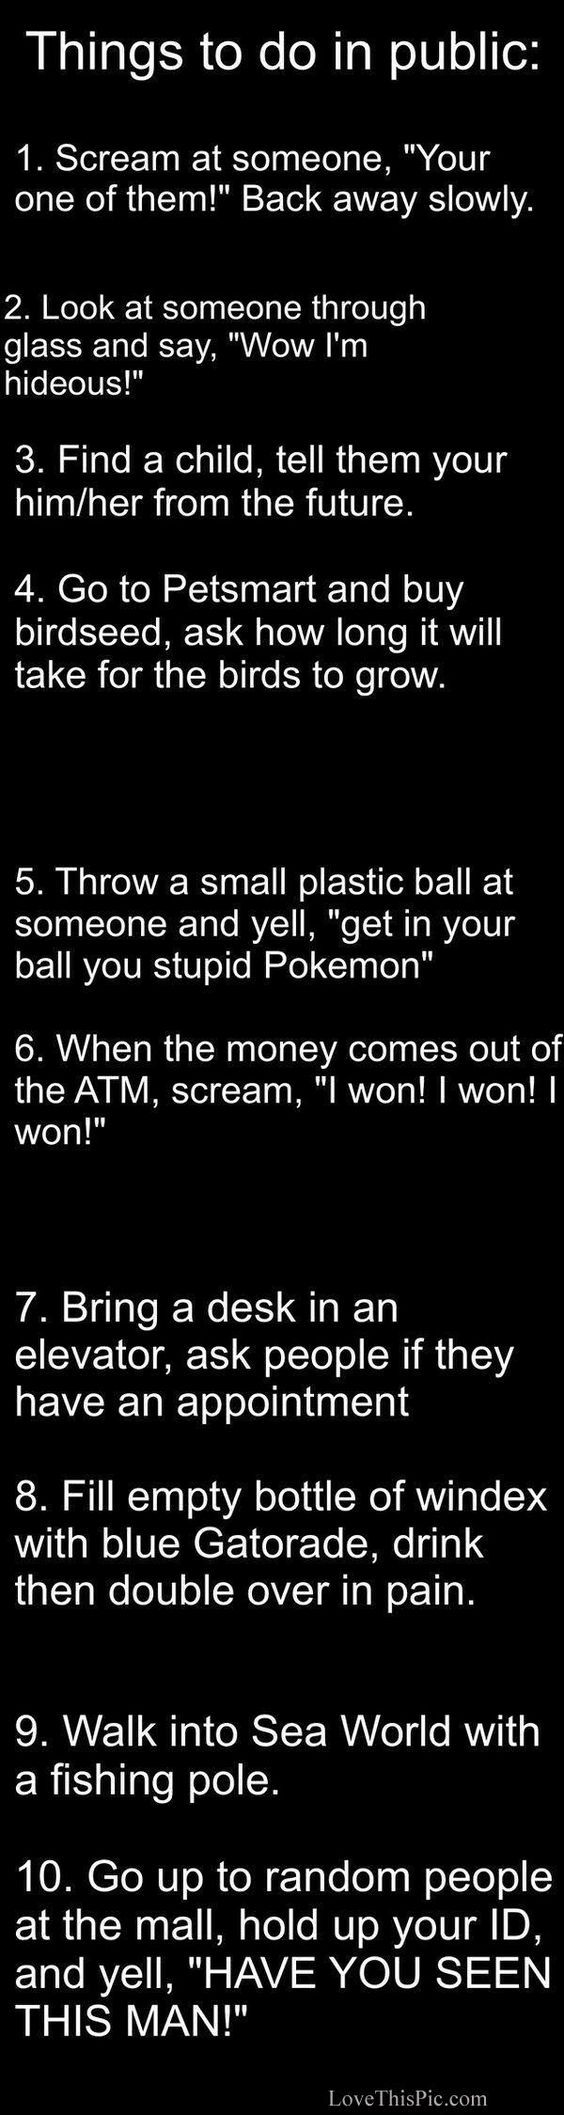 10 Hilarious Things To Do In Public funny jokes story lol funny quote funny quotes funny sayings joke humor stories funny jokes: